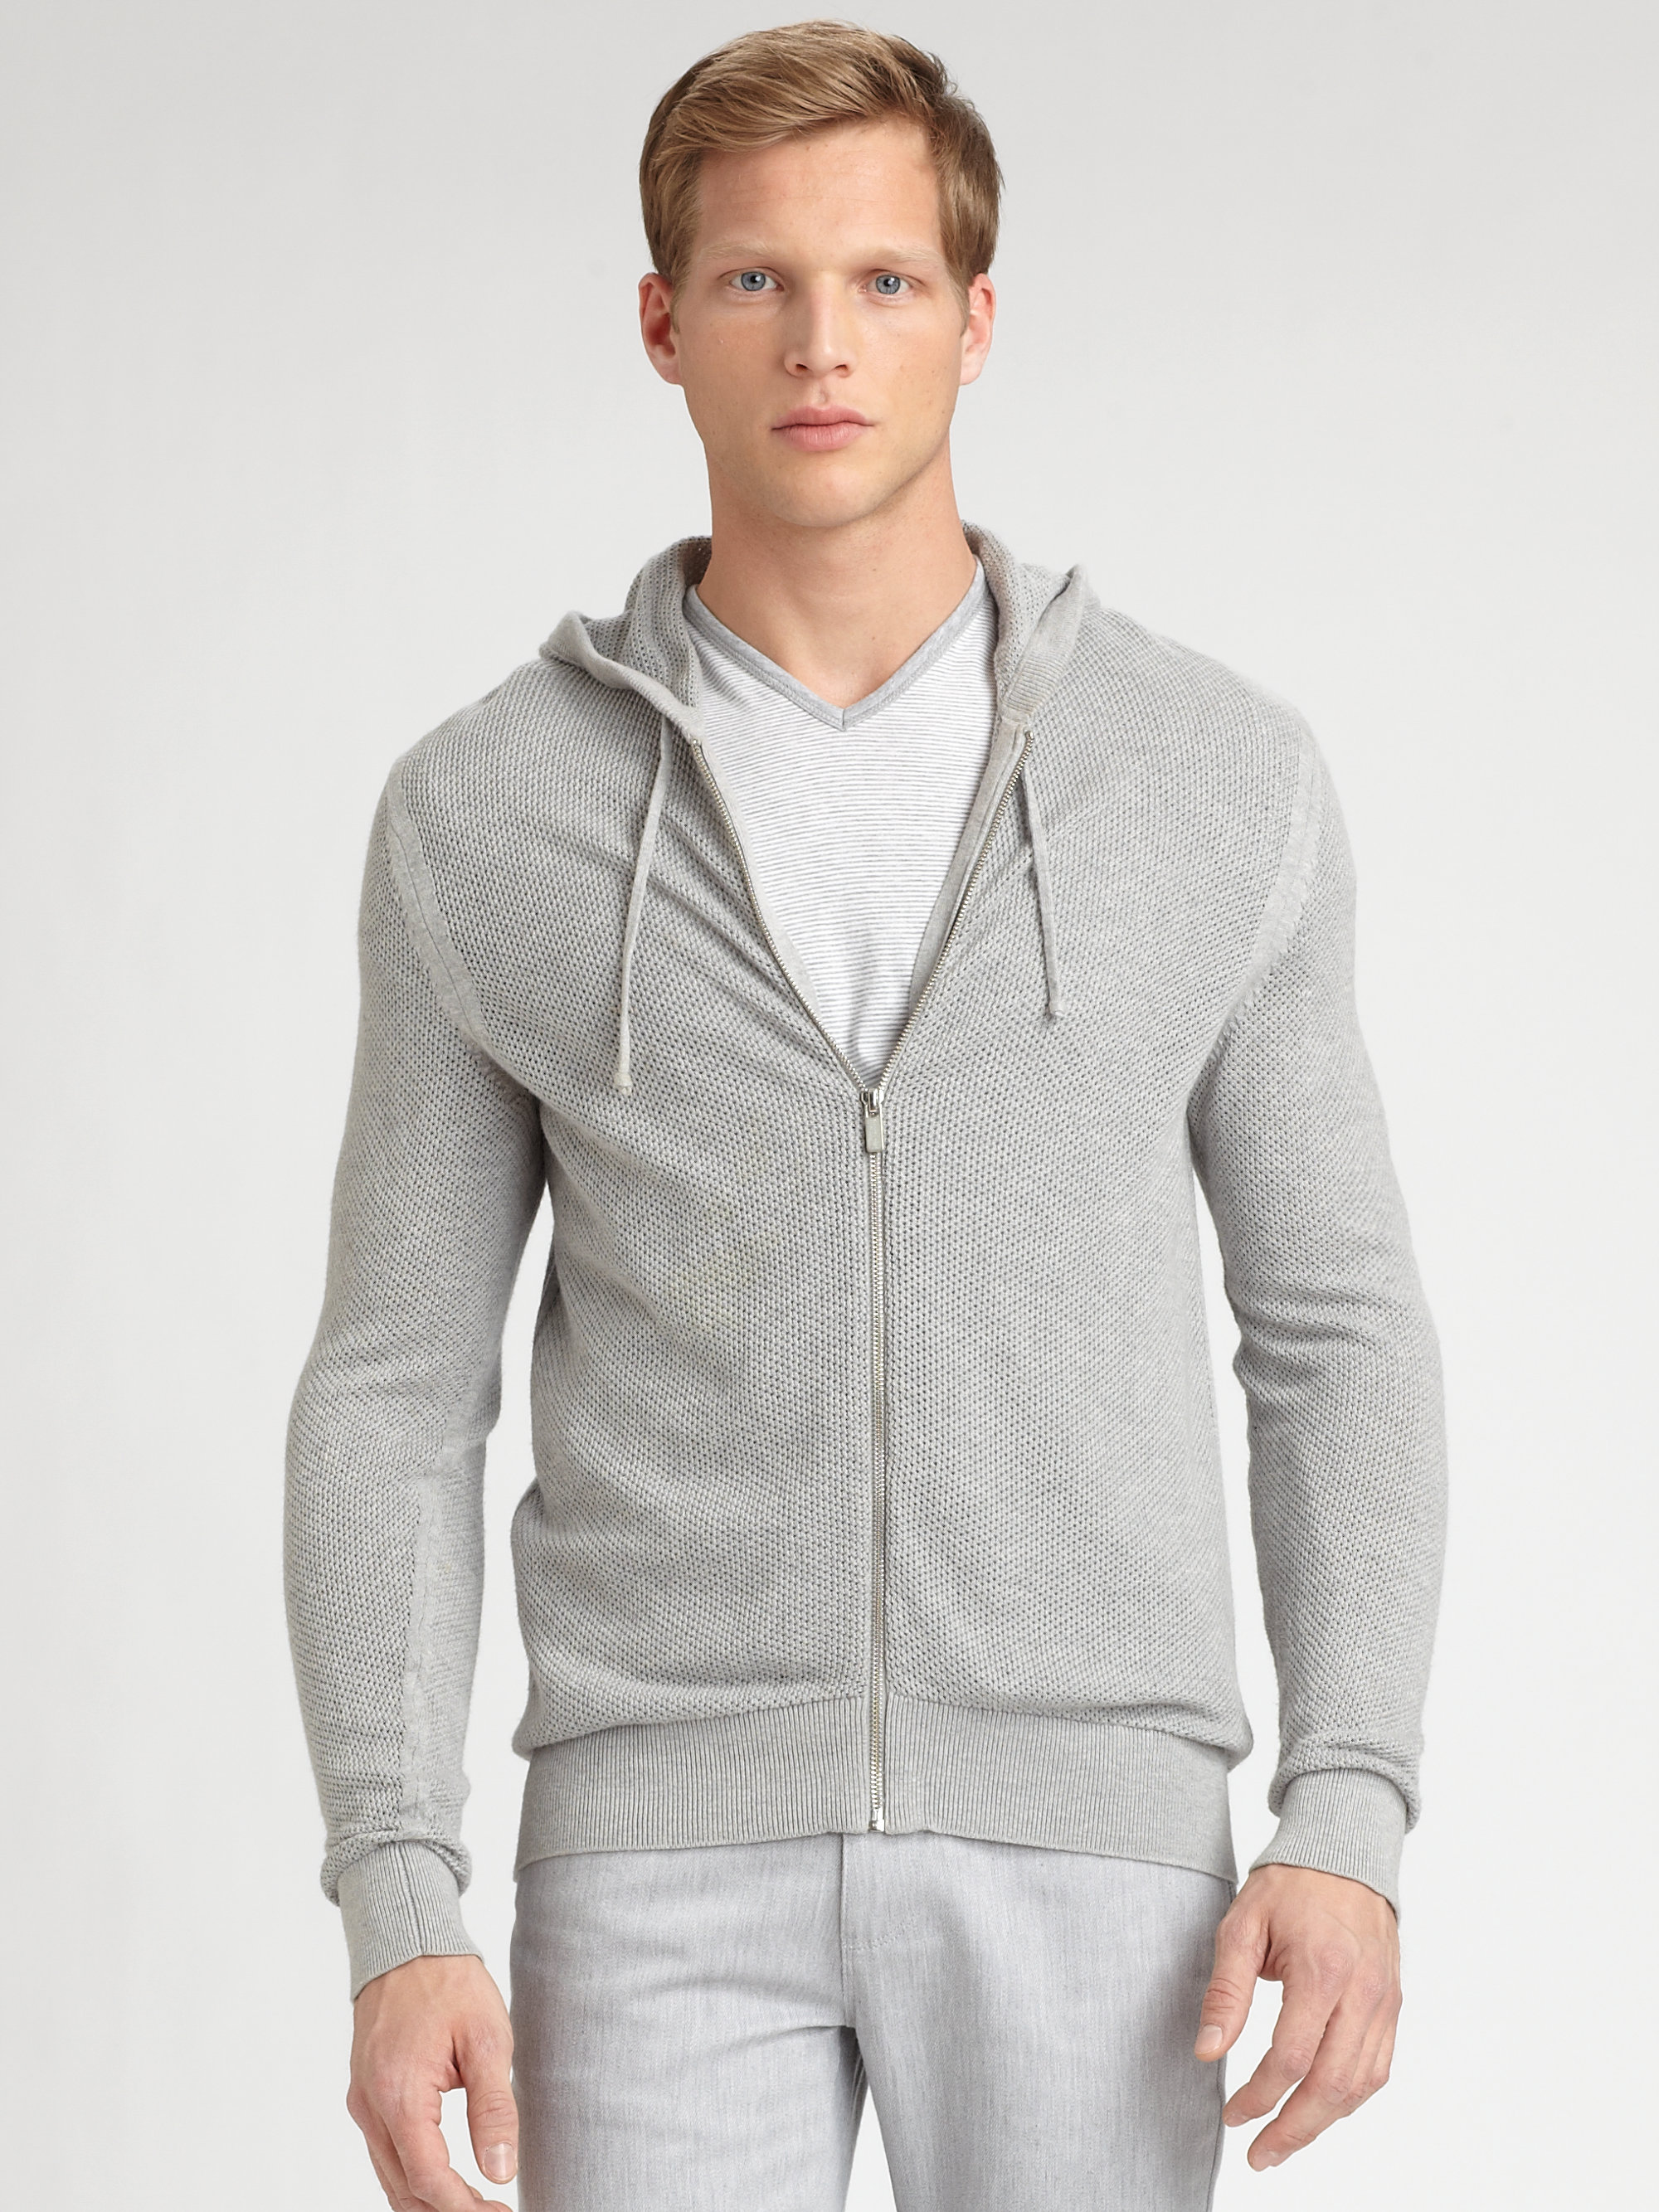 Lyst Michael Kors Waffle Knit Hoodie In Gray For Men